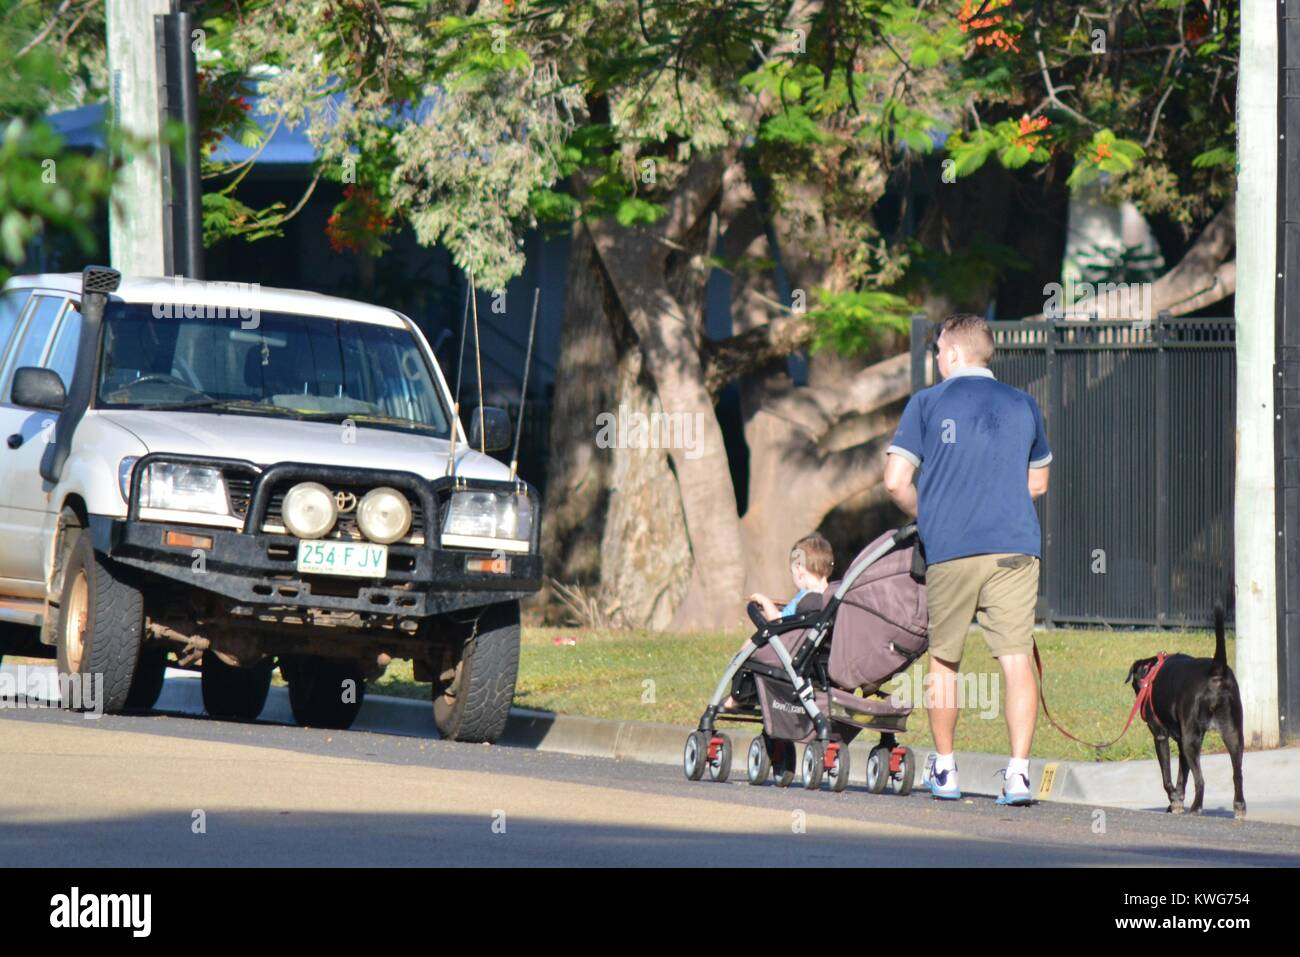 Man walks with a pram and child and black dog along a suburban street, Townsville, Queensland, Australia - Stock Image